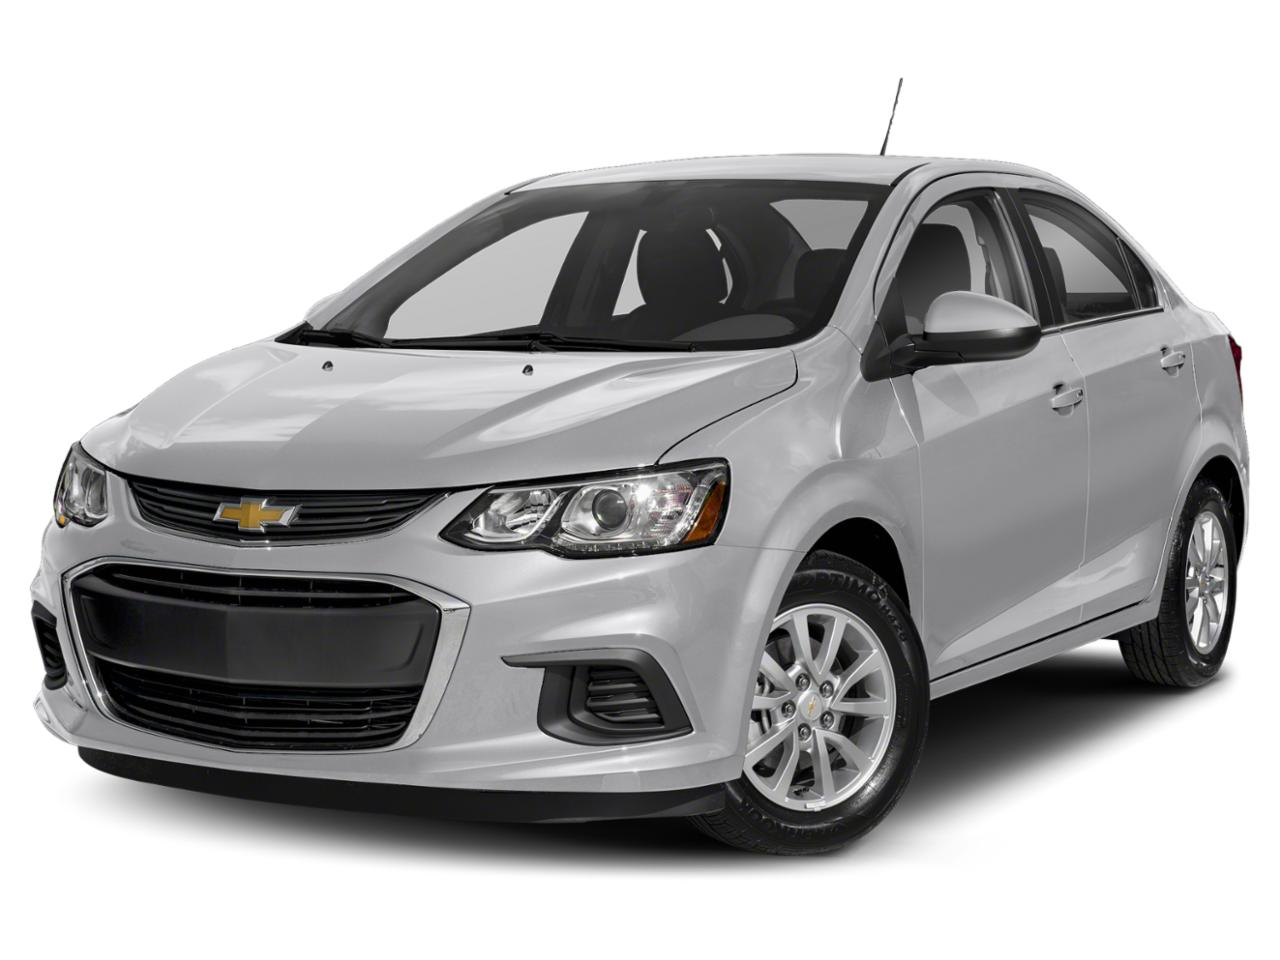 2020 Chevrolet Sonic Vehicle Photo in San Antonio, TX 78249